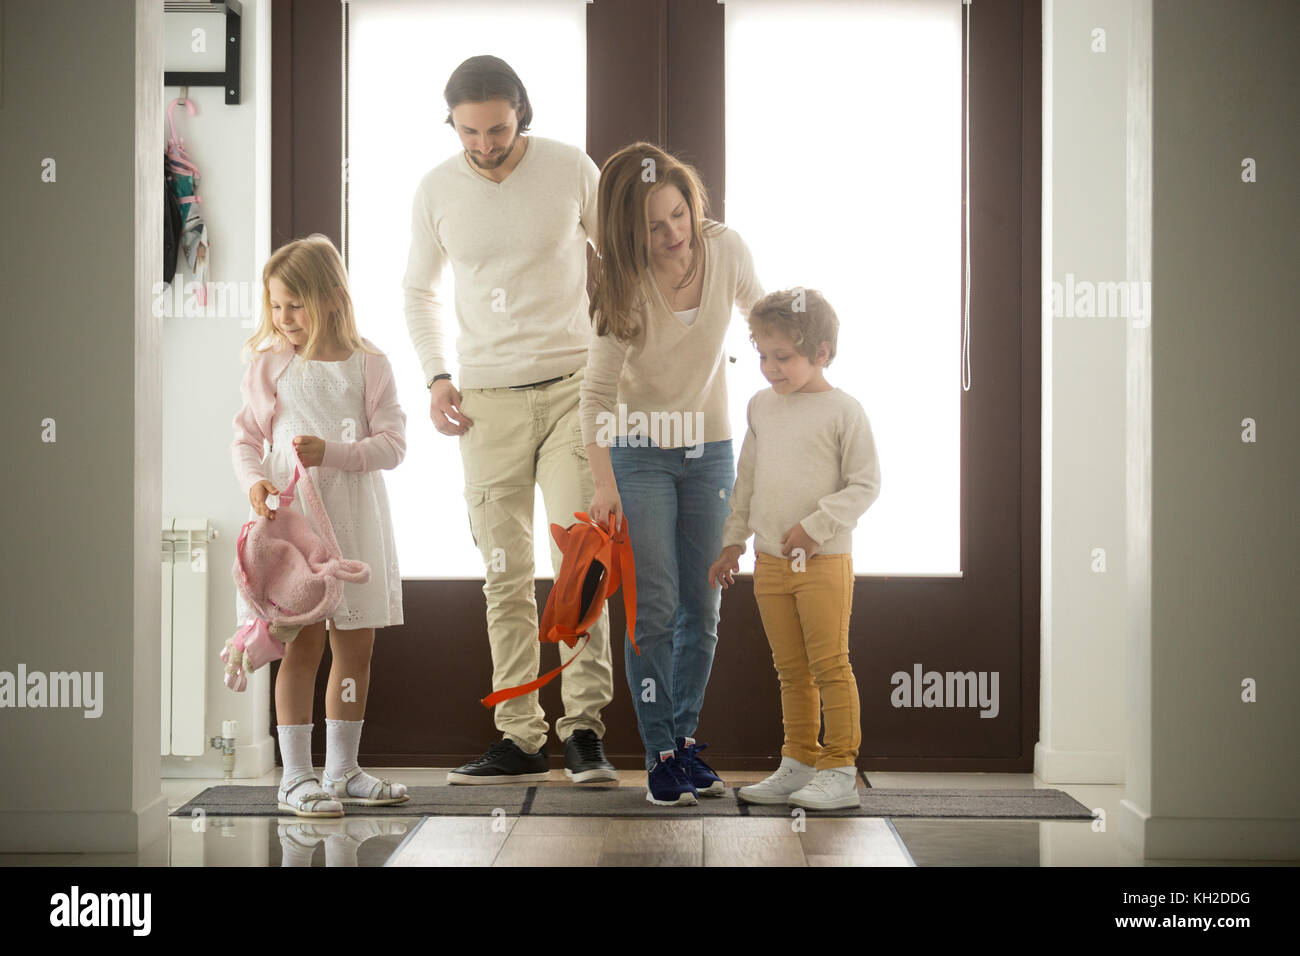 Children siblings returning sweet home with parents, happy family of four coming back to house after walking together - Stock Image